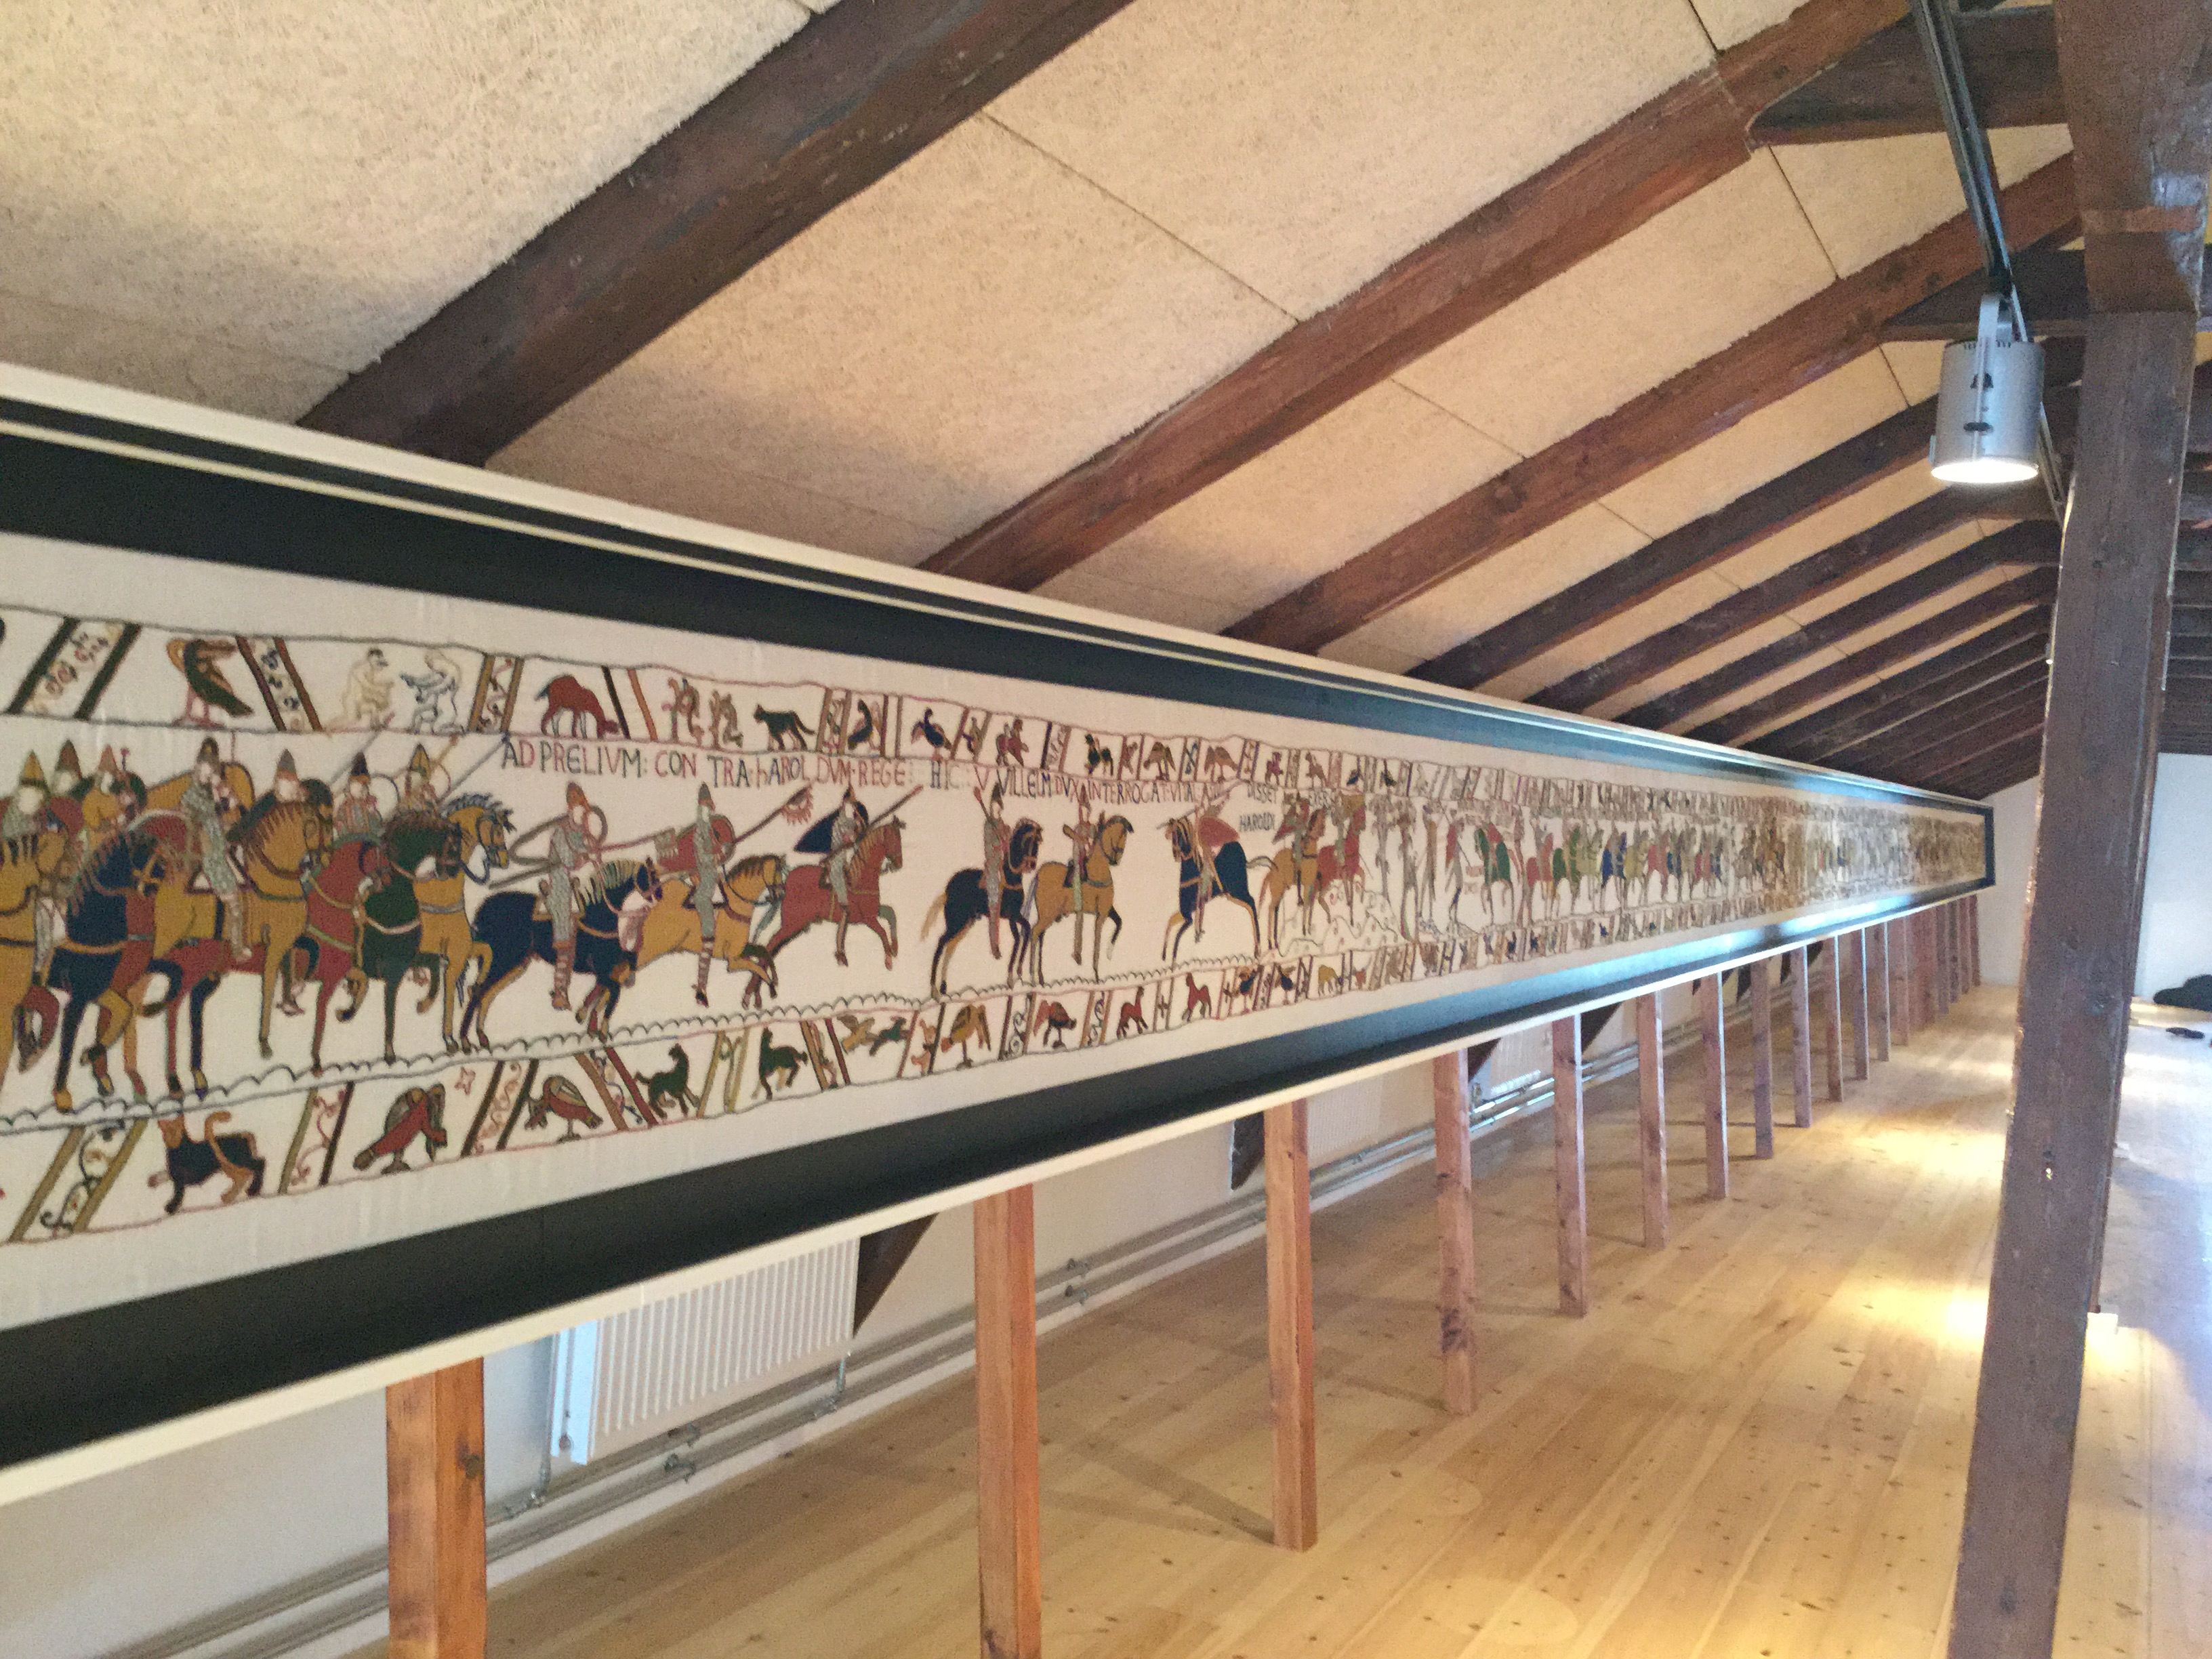 Bayeux Tapestry exhibition in Normandy